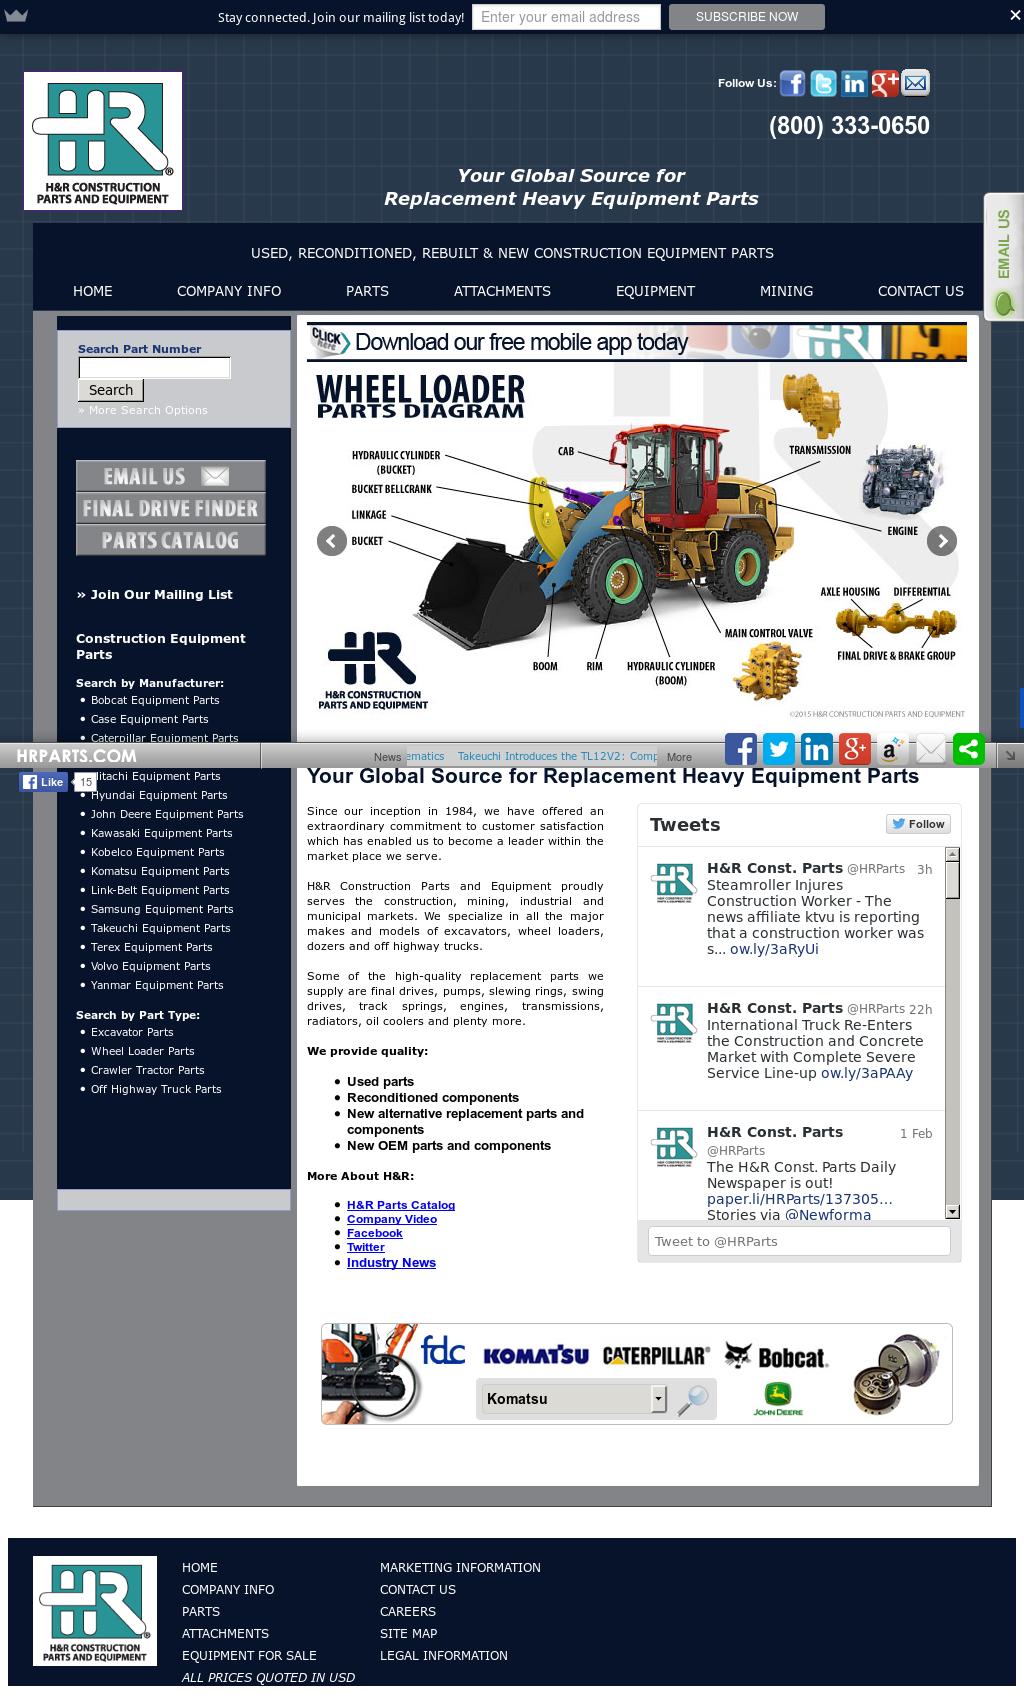 H & R Construction Parts Competitors, Revenue and Employees - Owler